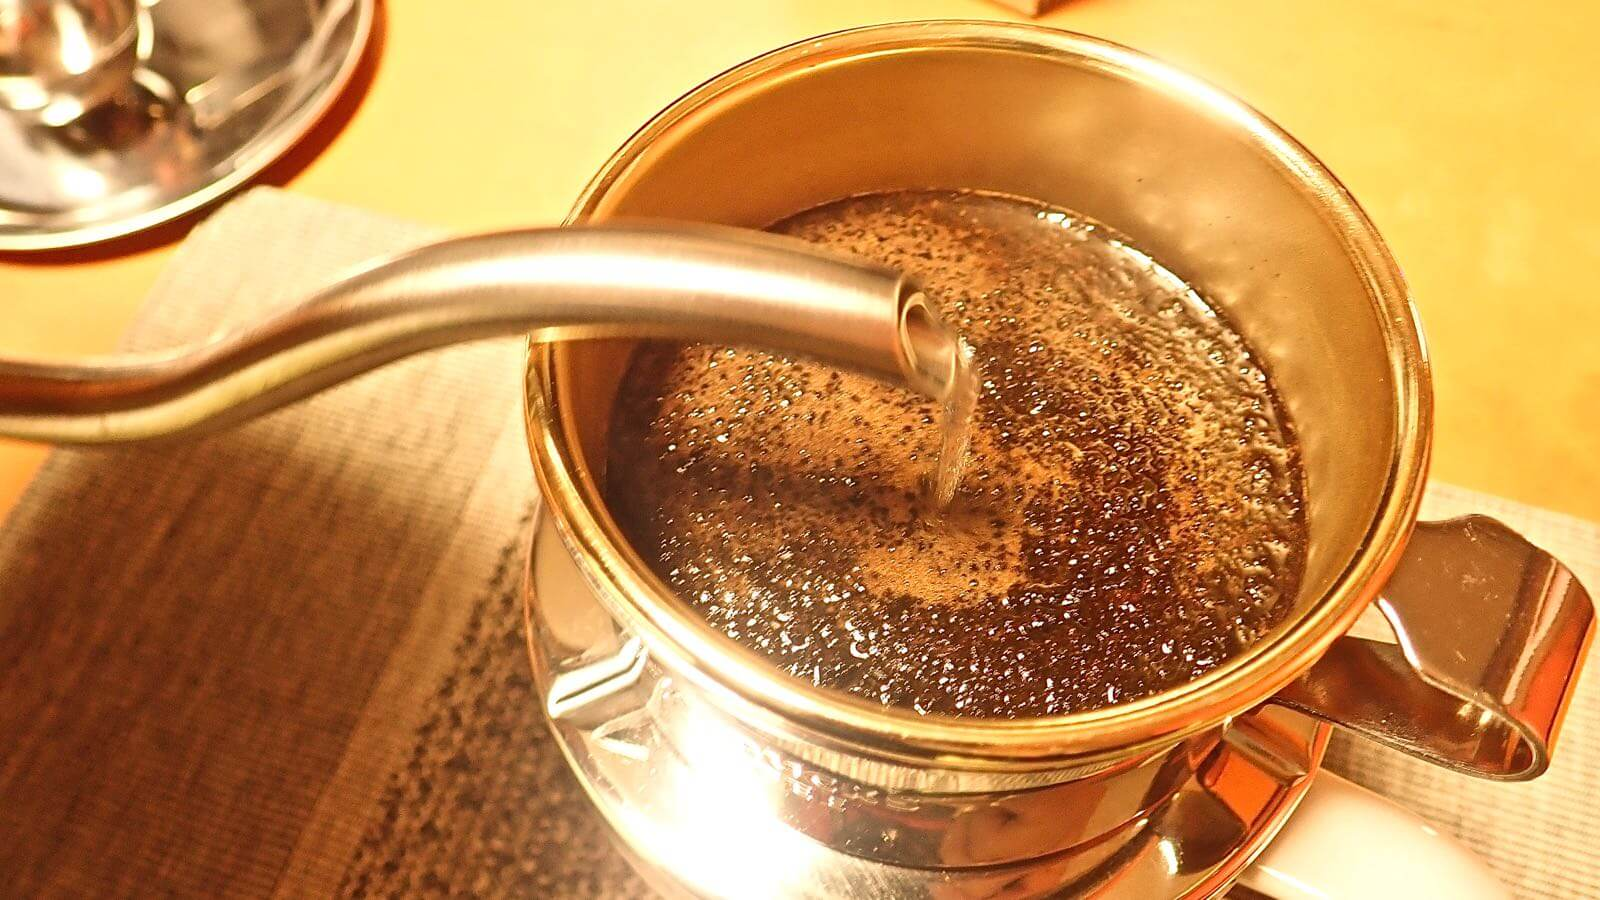 0014 Starbucks Stainless Dripper How to make delicious coffee 09